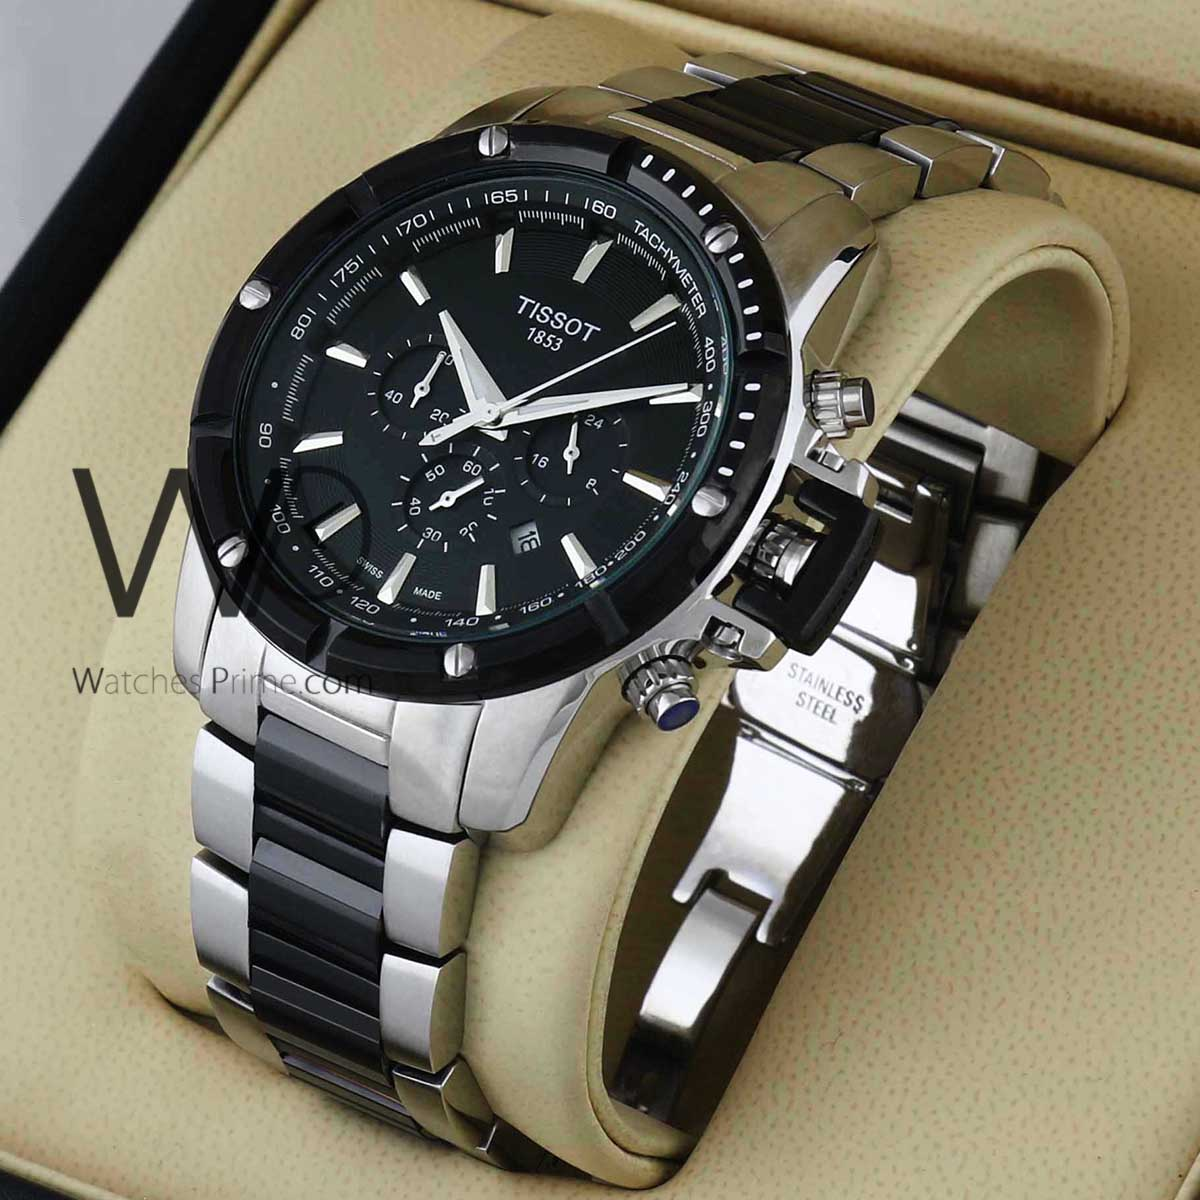 d61cad634 TISSOT CERAMIC CHRONOGRAPH WATCH BLACK WITH STAINLESS STEEL SILVER&BLACK  BELT. SKU: 553. Roll over image to zoom in